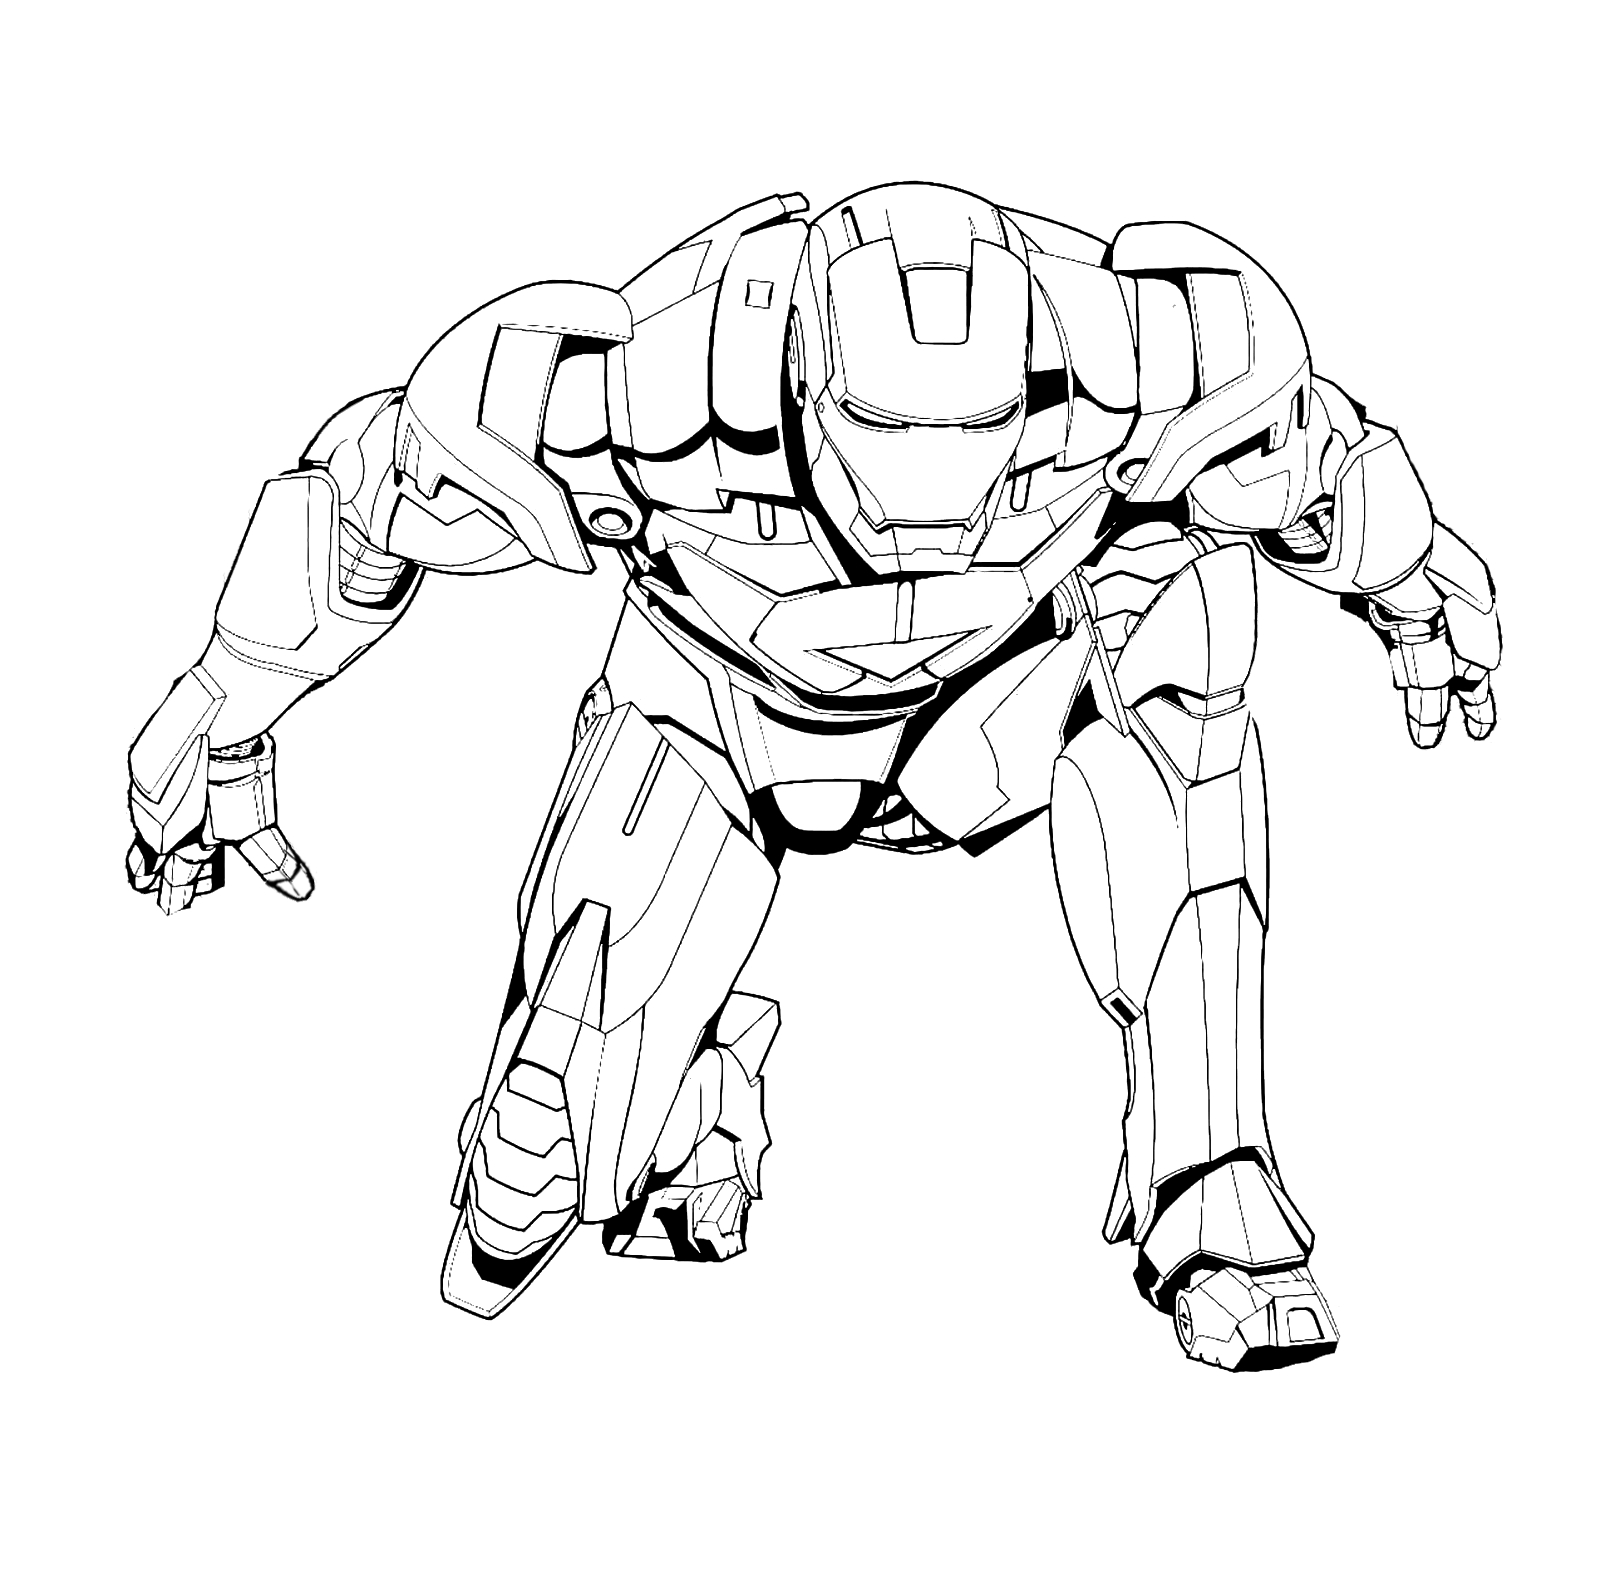 iron man coloring pages - iron man atterrato con la sua possente armatura